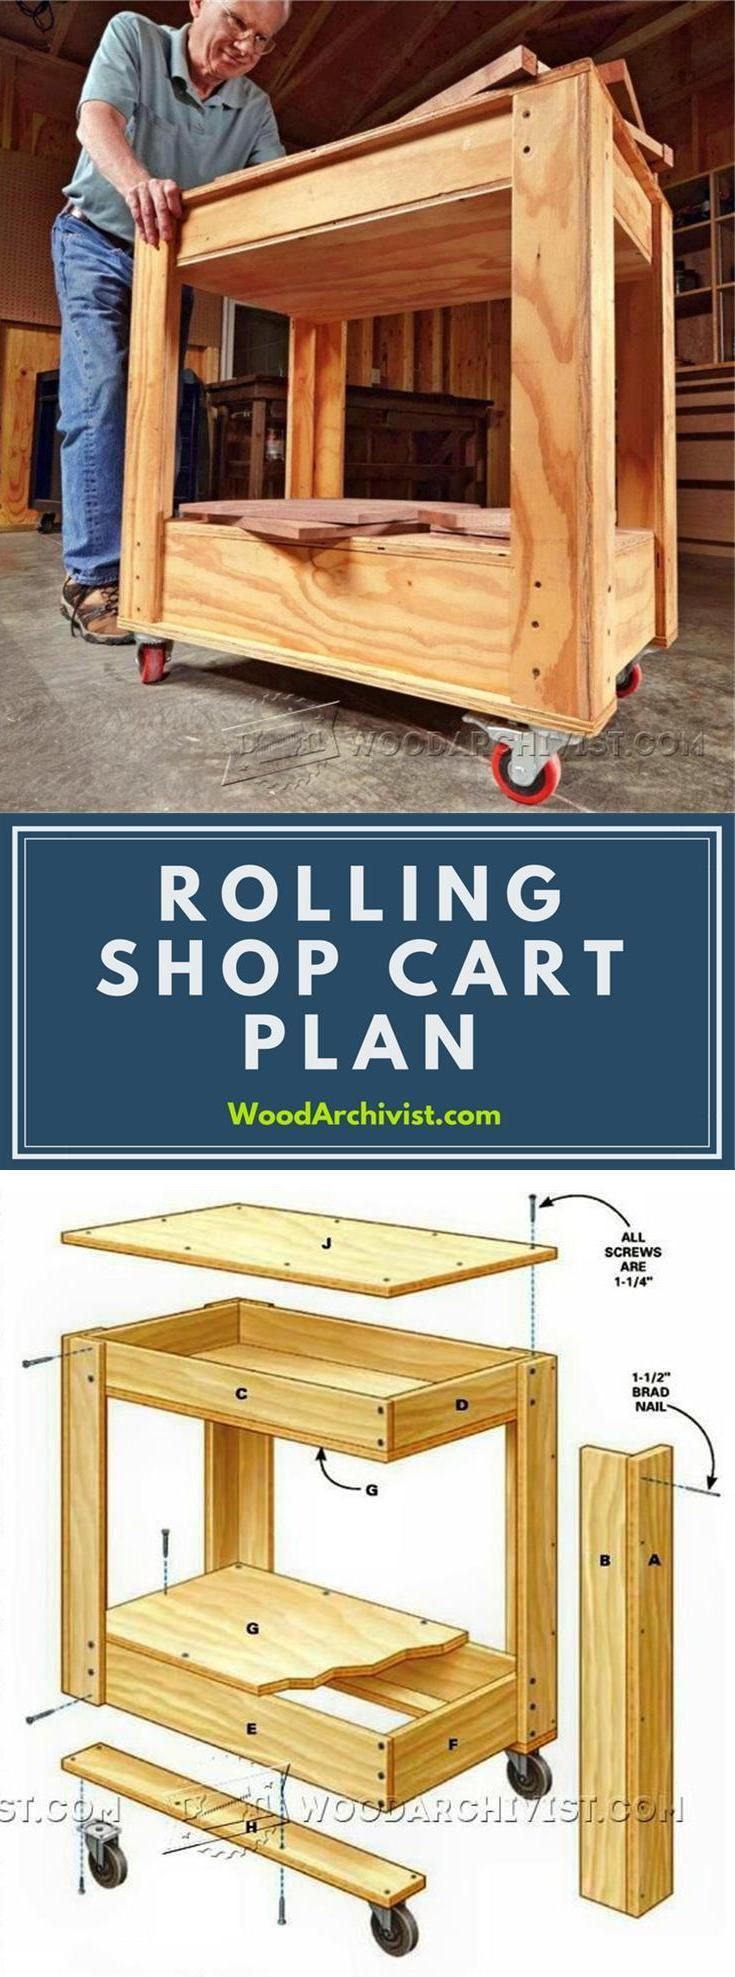 Rolling Shop Cart Plans - Workshop Solutions Projects, Tips and Tricks | WoodArchivist.com